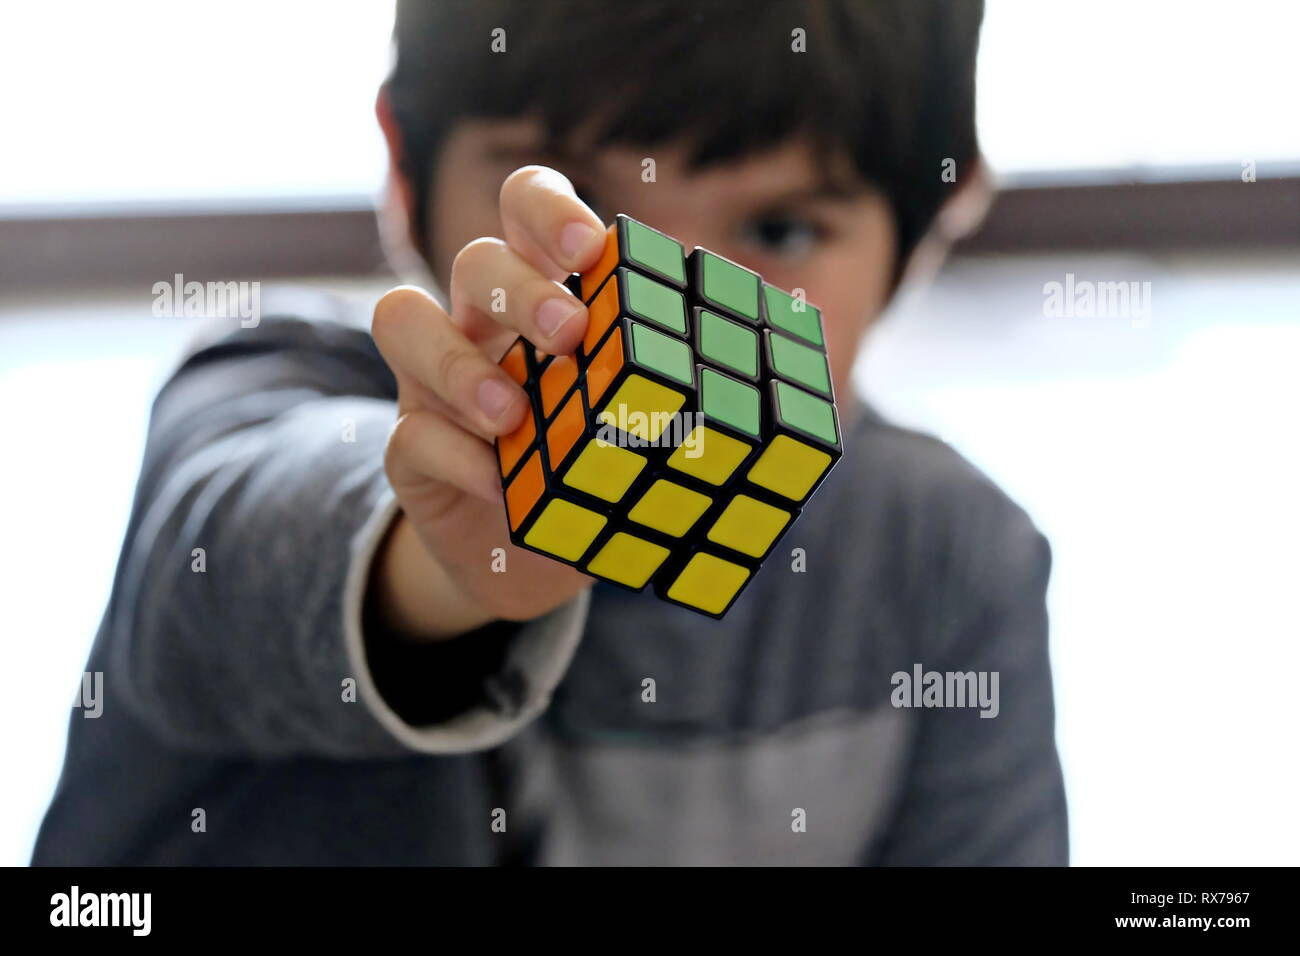 kid solved Rubik's cube - Stock Image